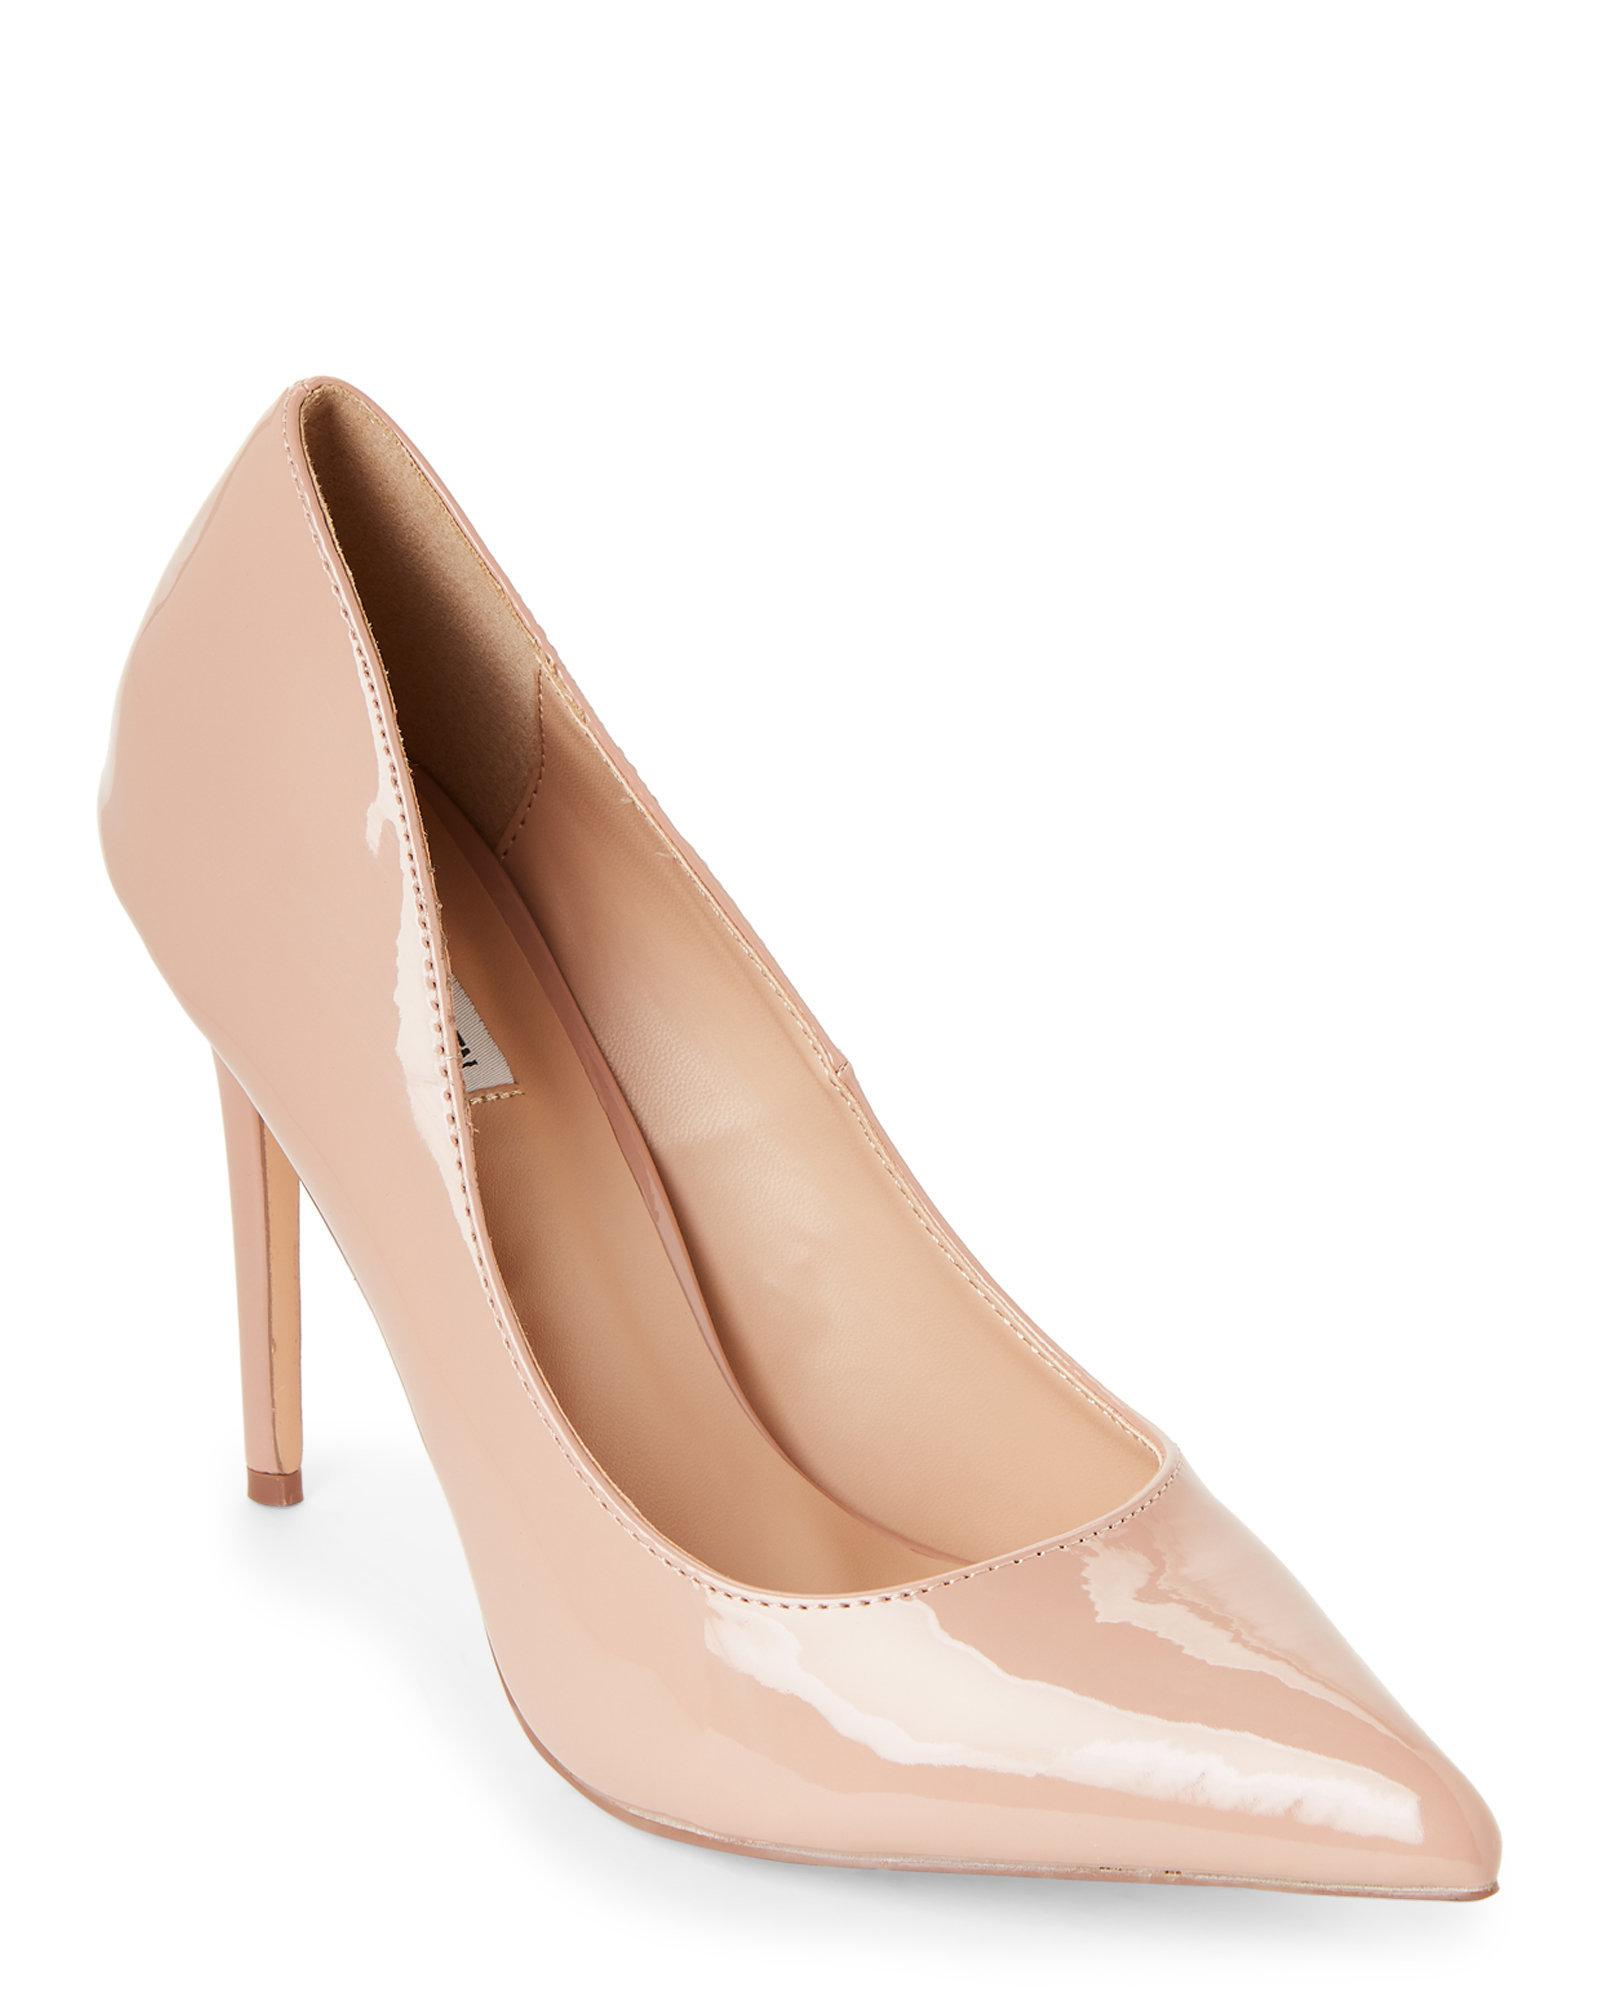 d41d6f1f9dd Lyst - Steve Madden Dark Blush Poet Pointed Toe Pumps